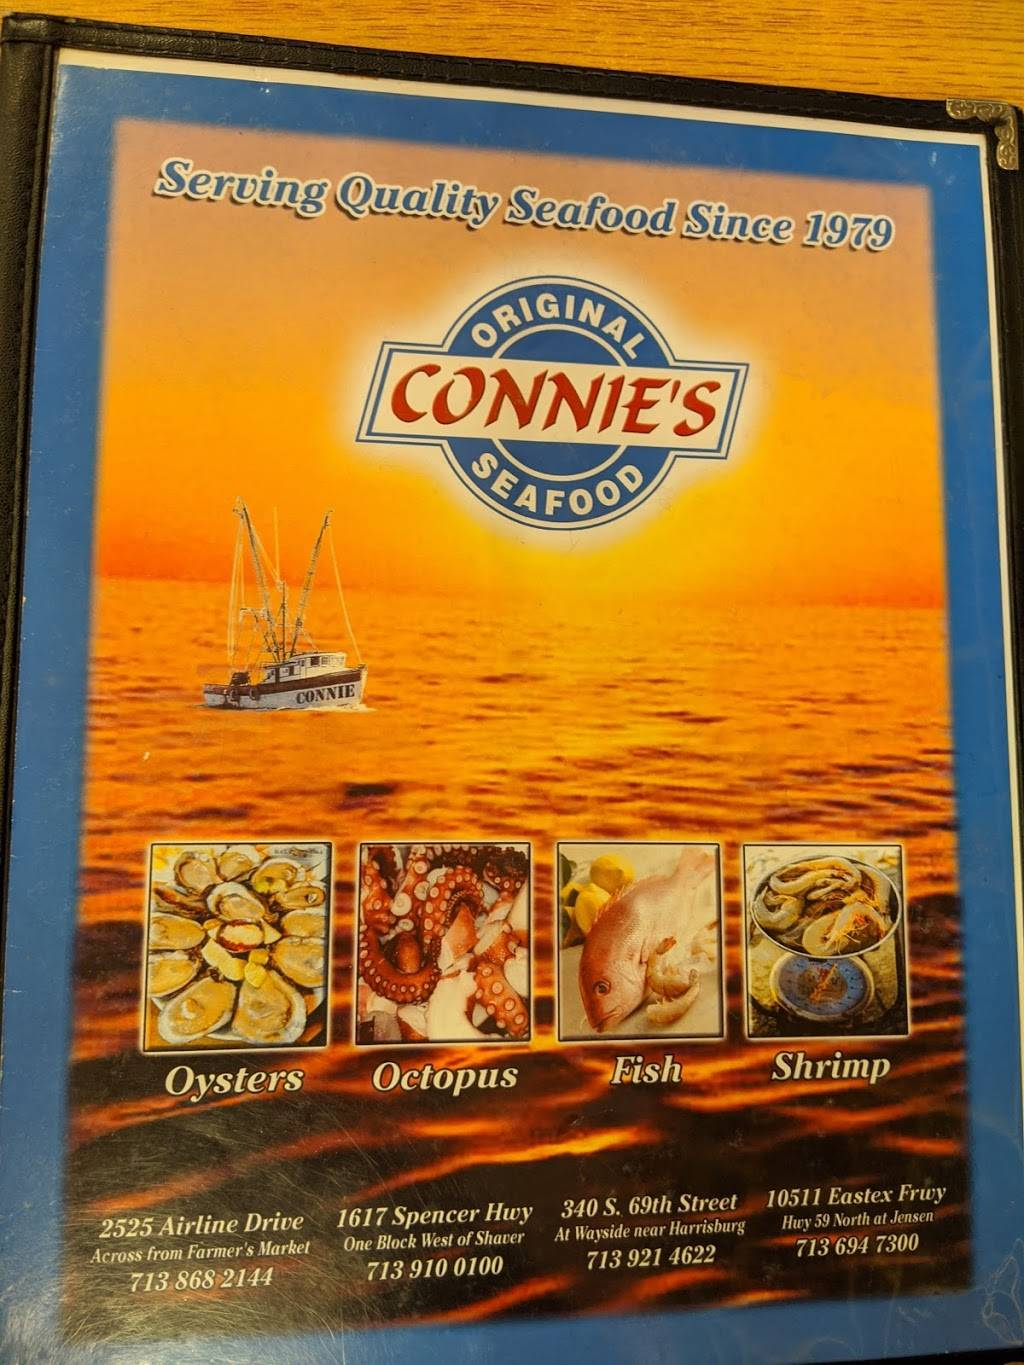 Connies Seafood Market & Restaurant - restaurant  | Photo 5 of 20 | Address: 2525 Airline Dr, Houston, TX 77009, USA | Phone: (713) 868-2144